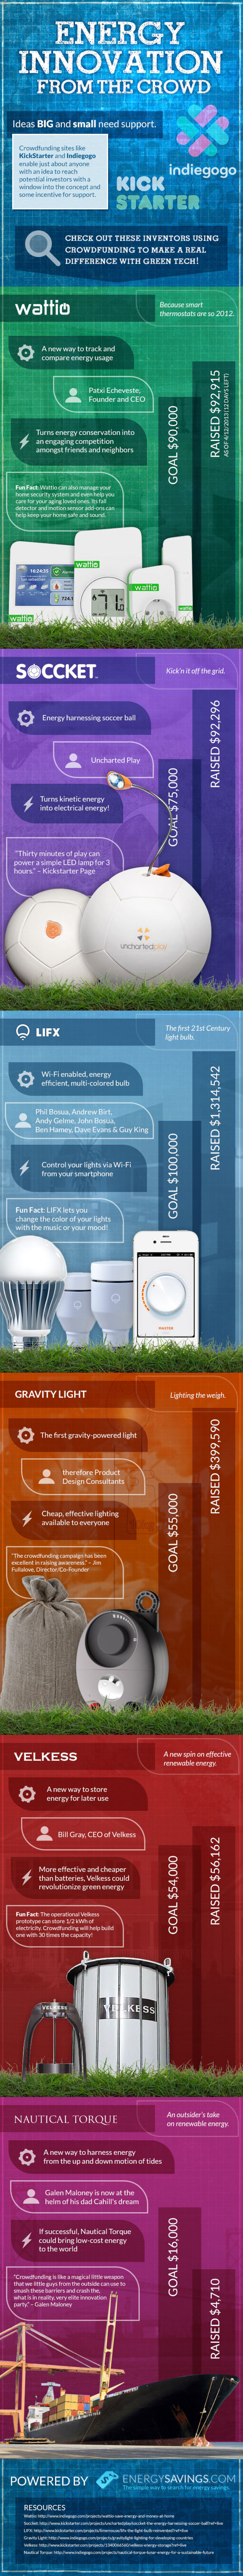 Energy Innovation from the Crowd Infographic